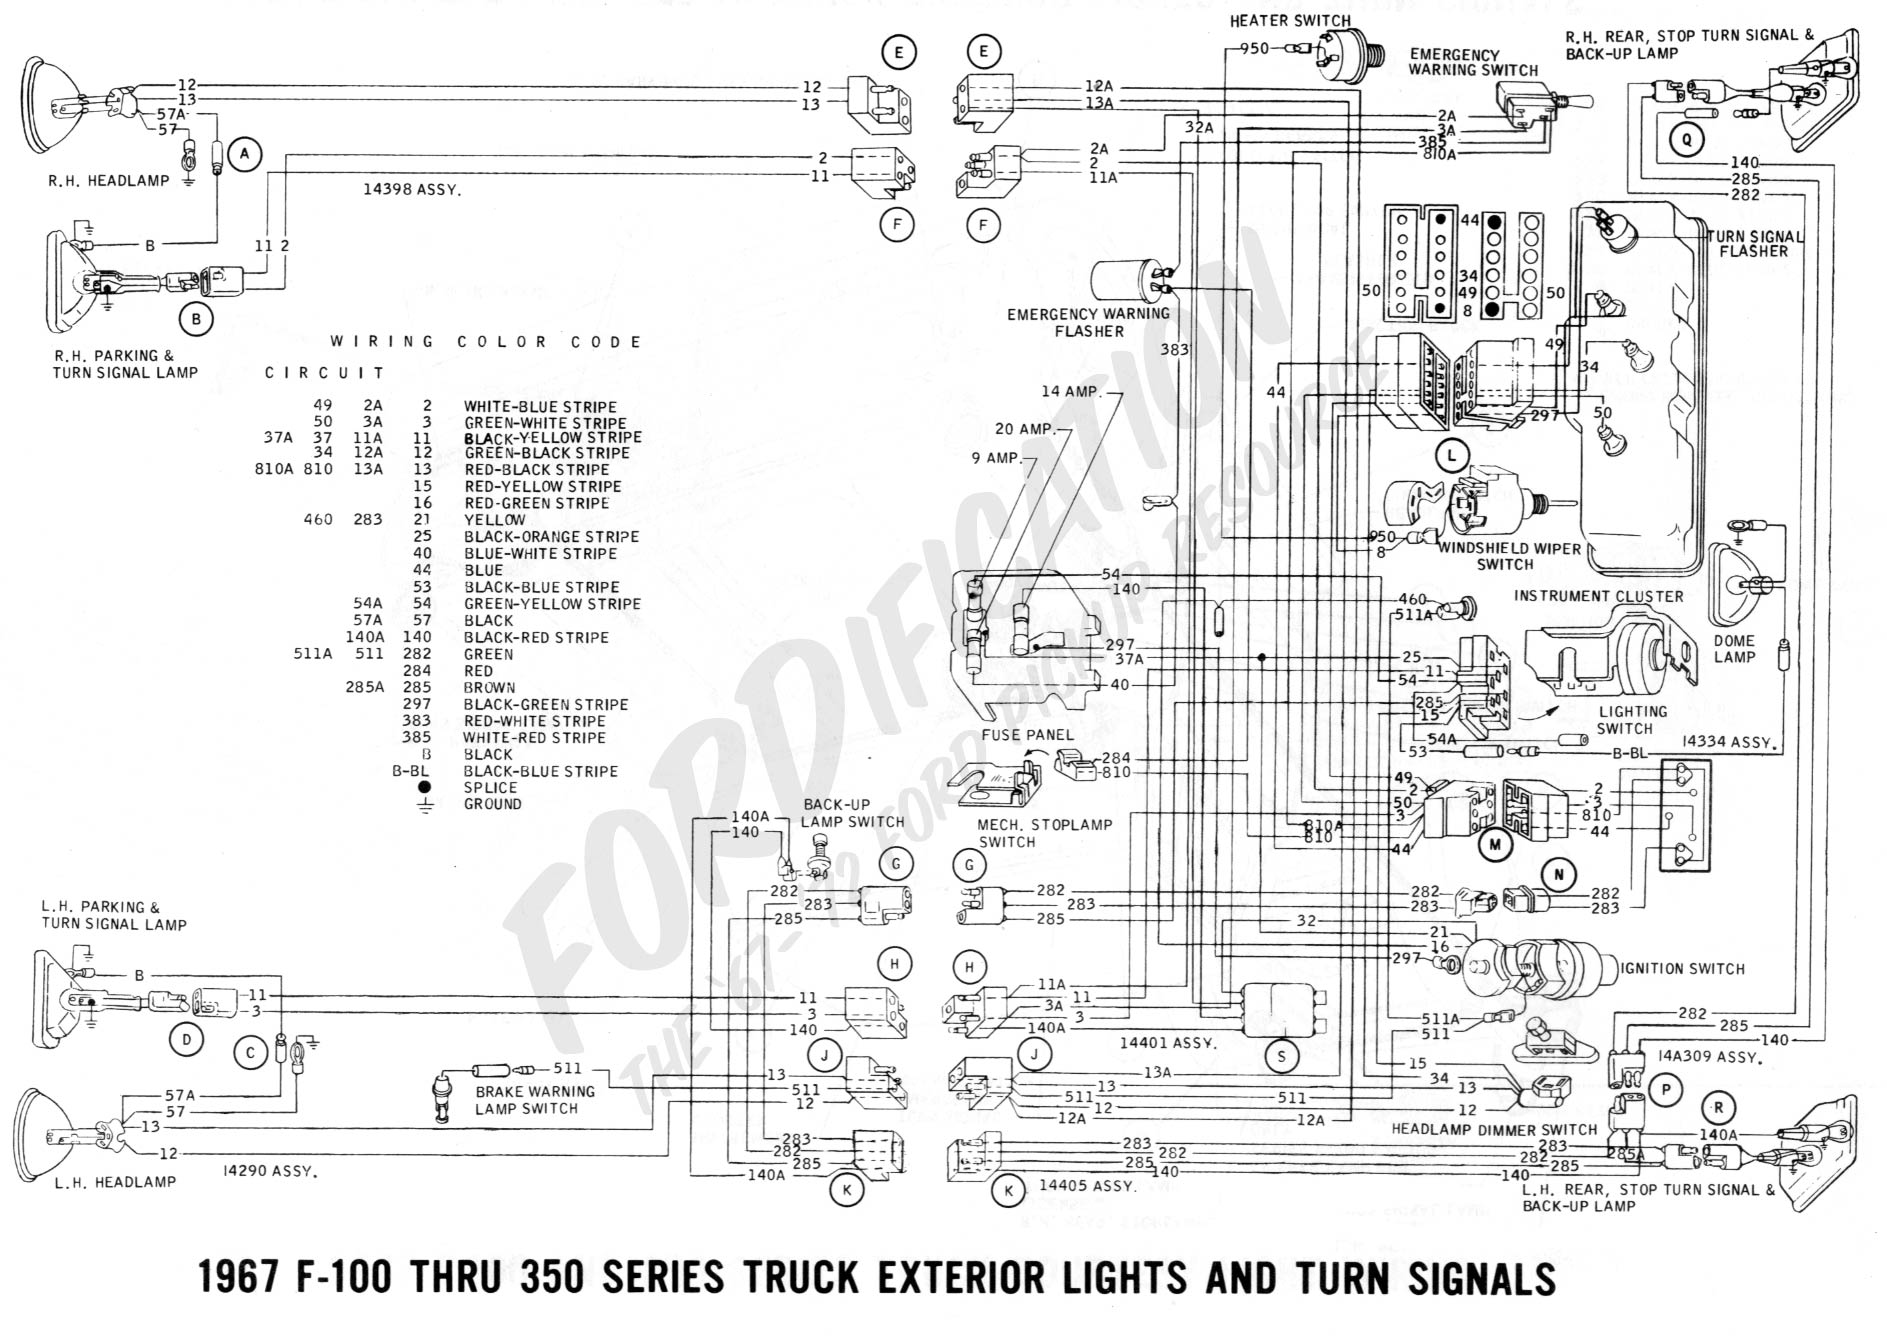 2005 F250 Wiring Diagram Detailed Schematics Ford Abs Diagrams U2022 For Brakes